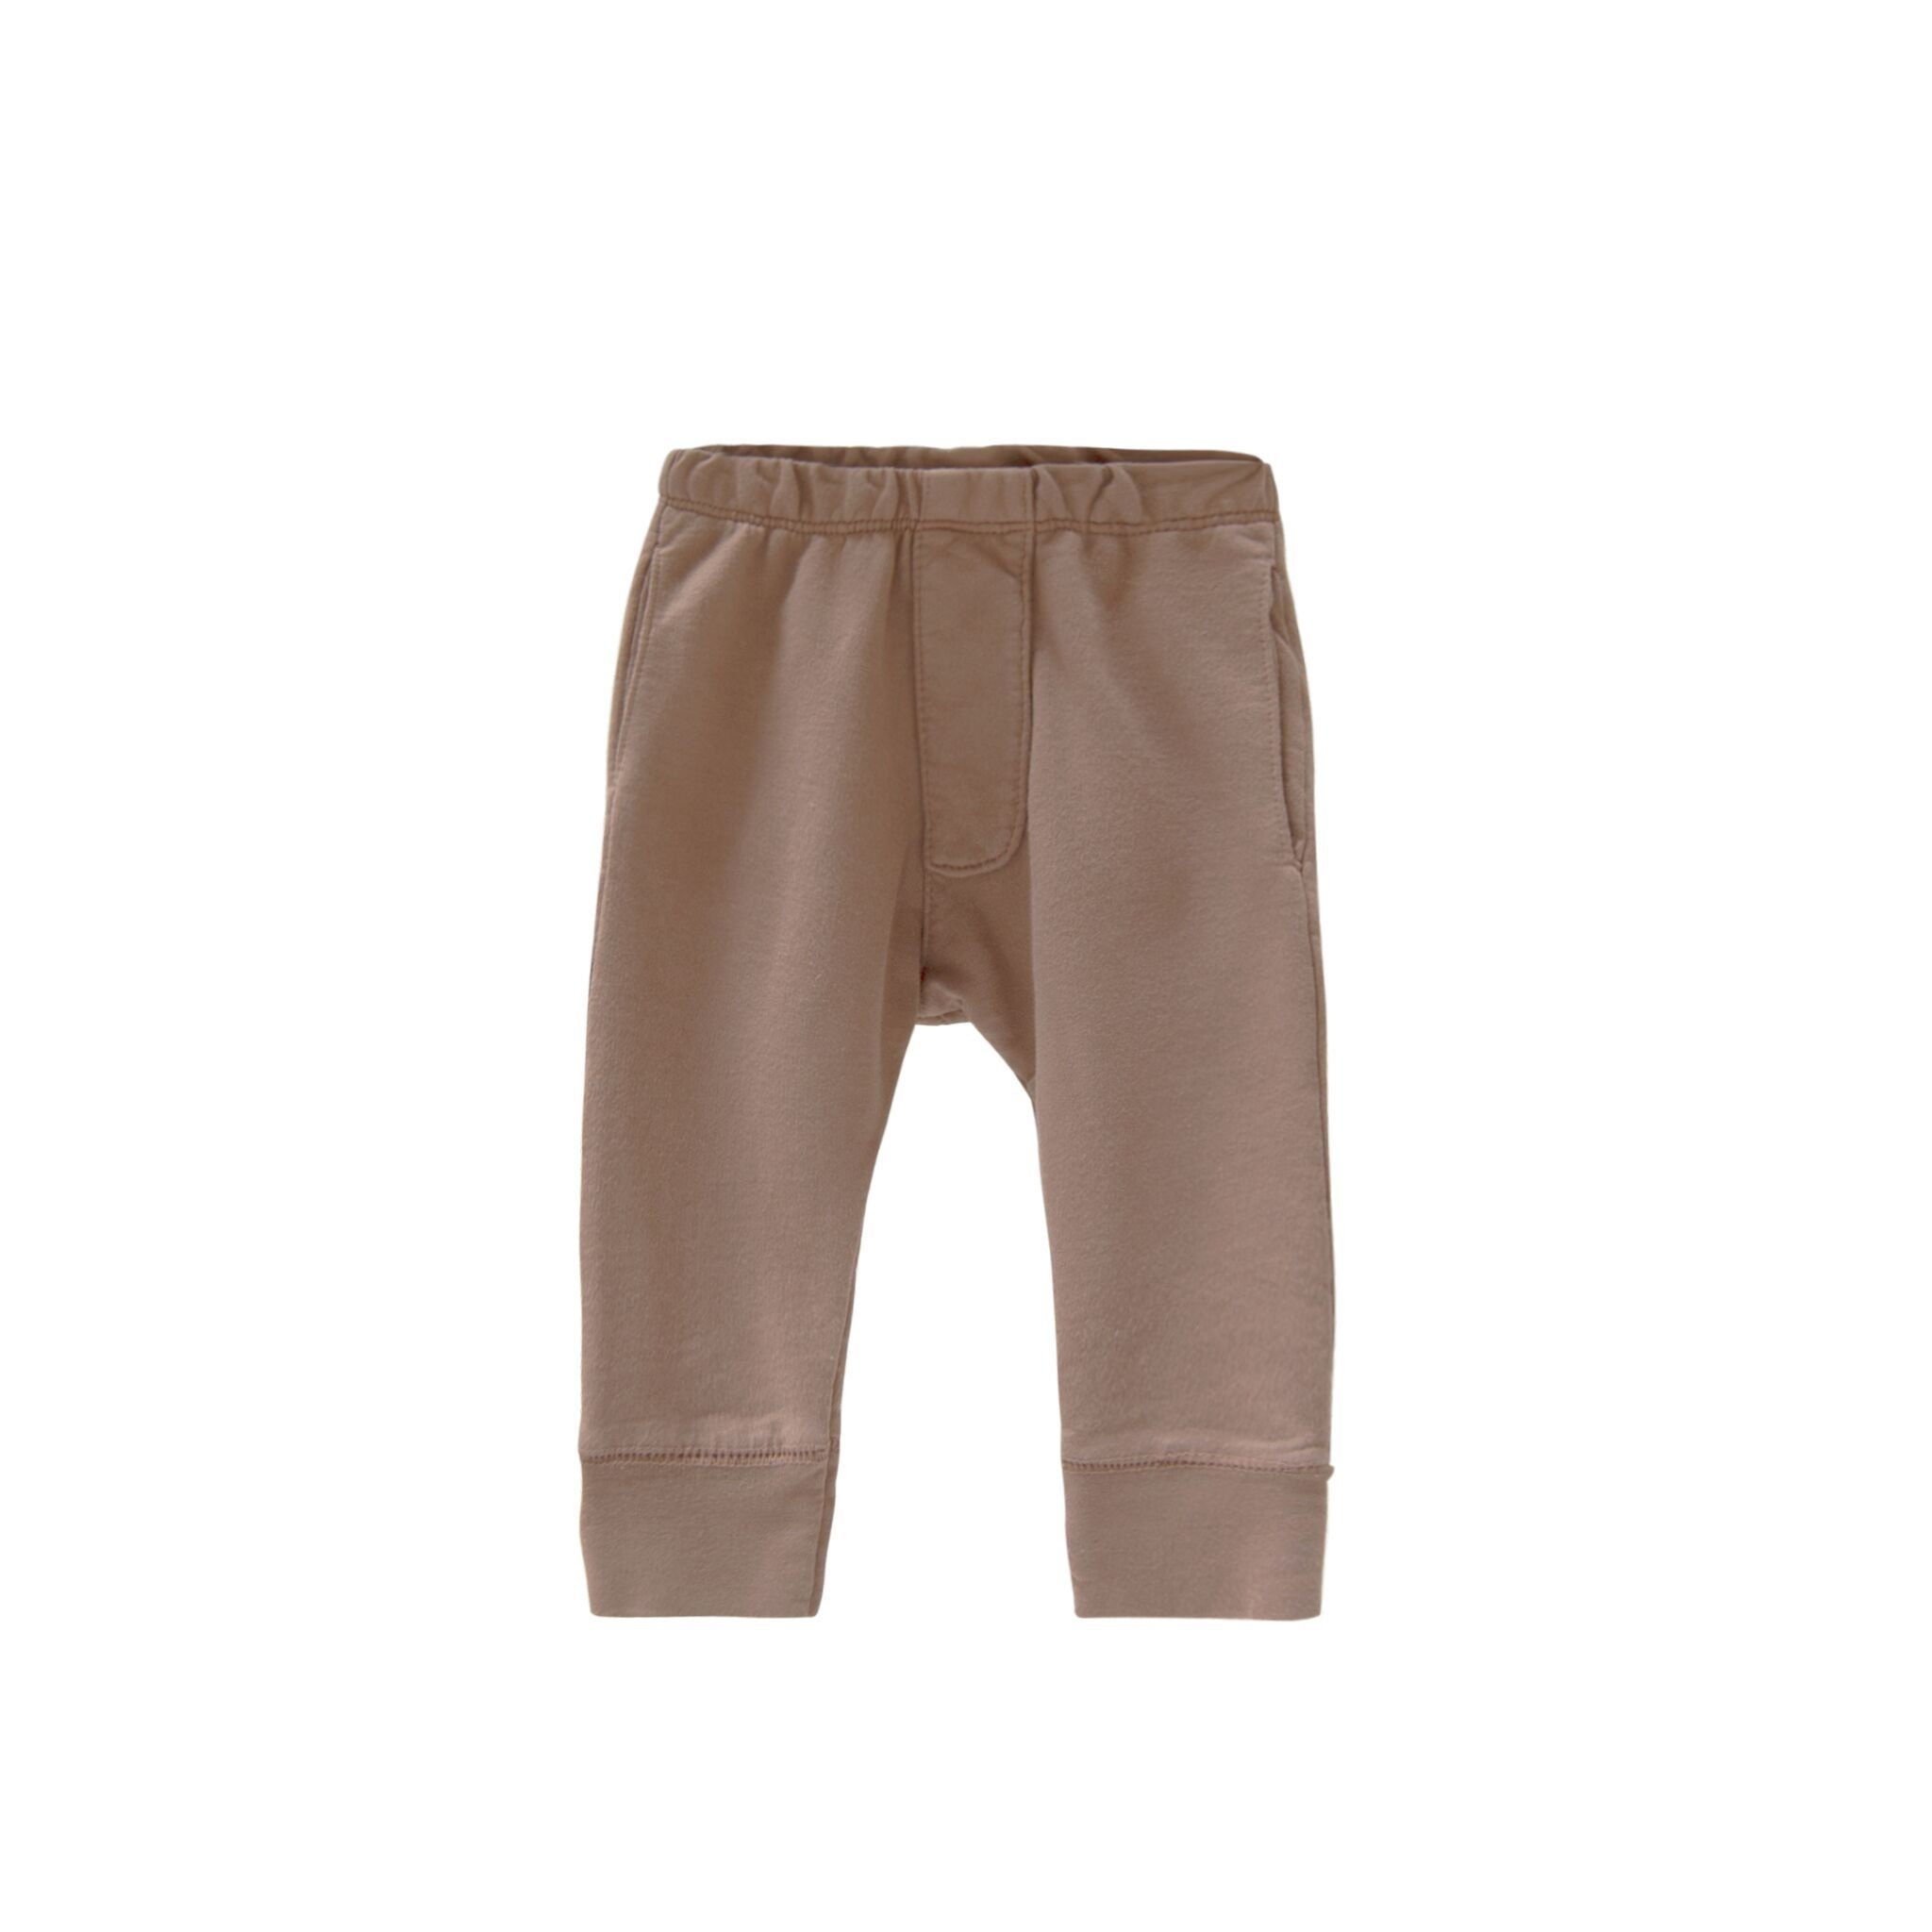 GOGENTLYNATION Trouser With Pockets